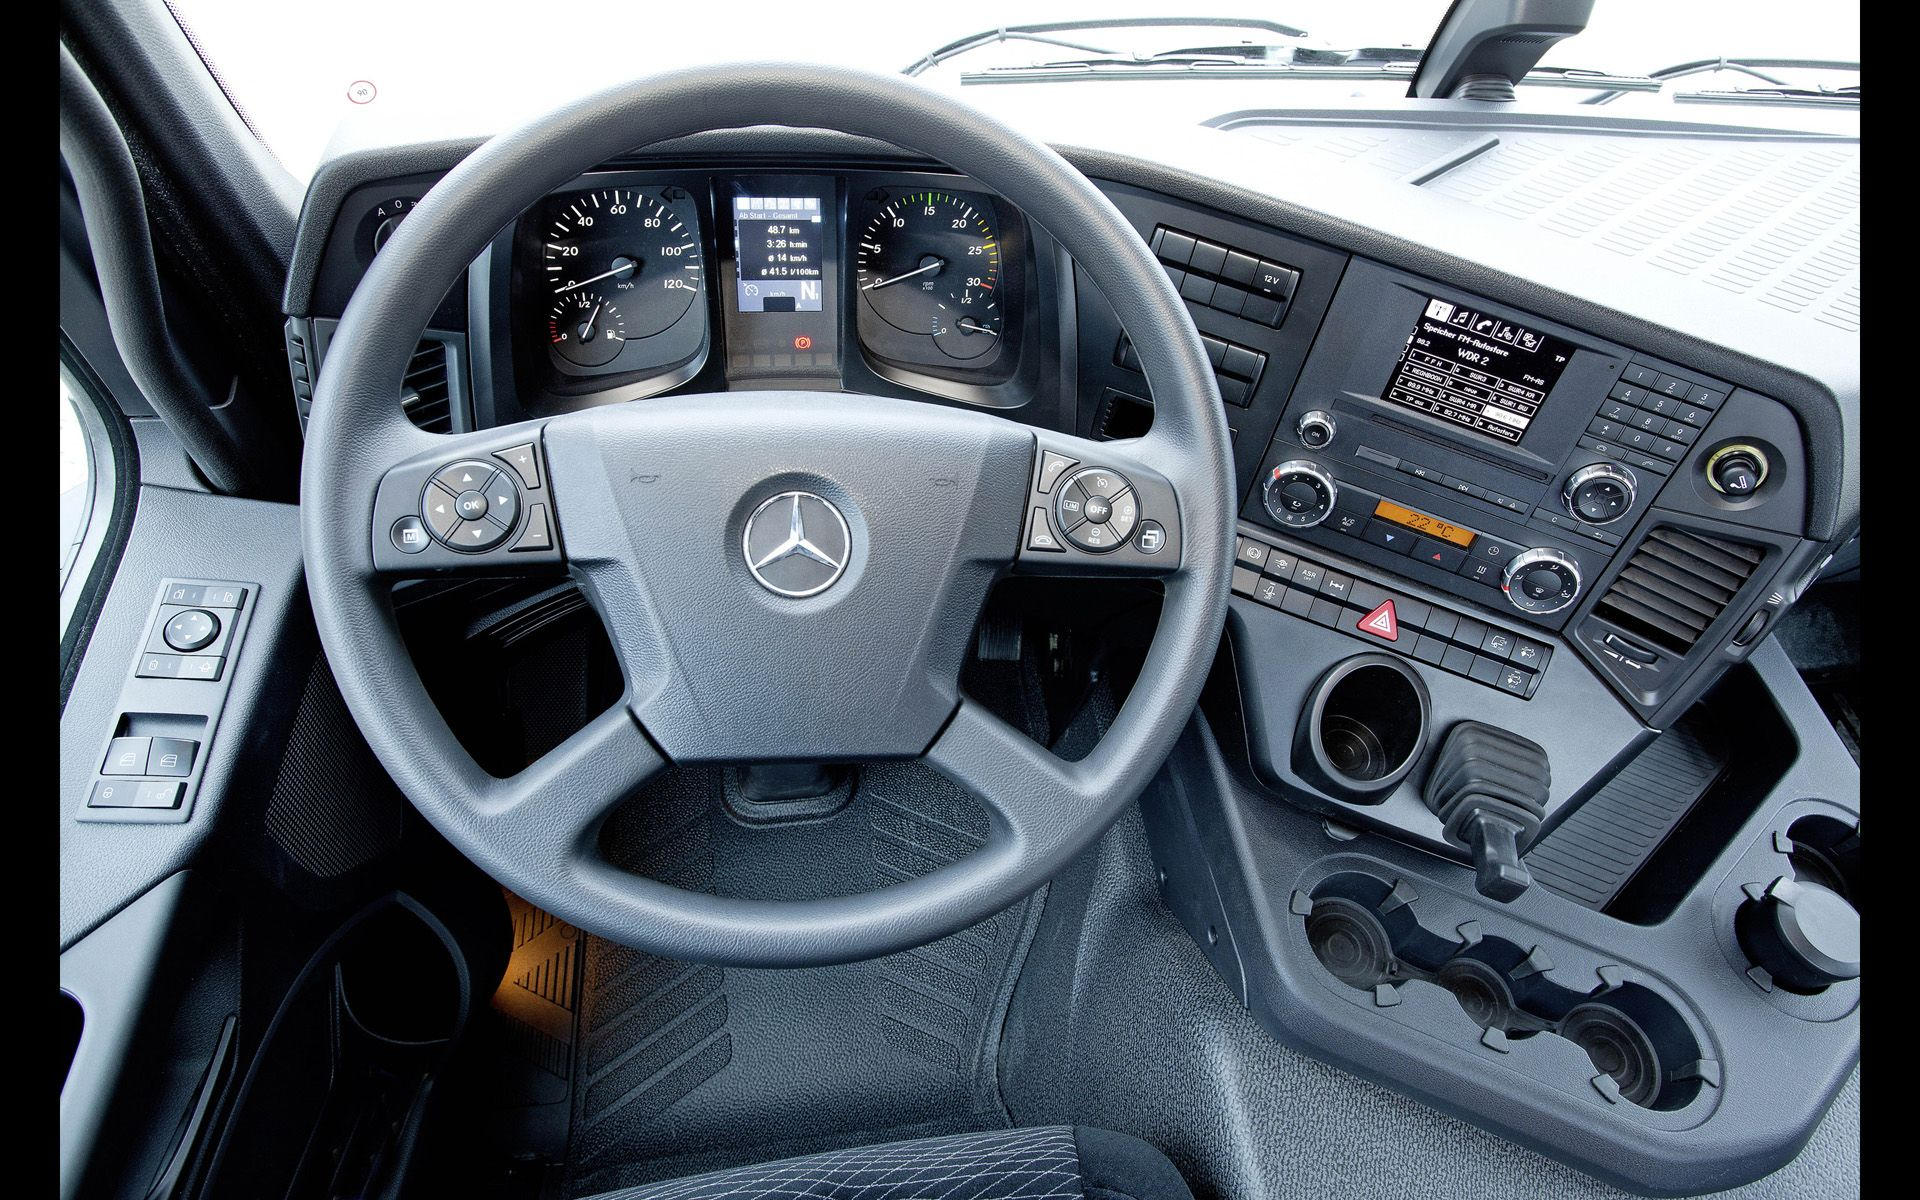 Mercedes Benz Truck Interior With Images Truck Interior